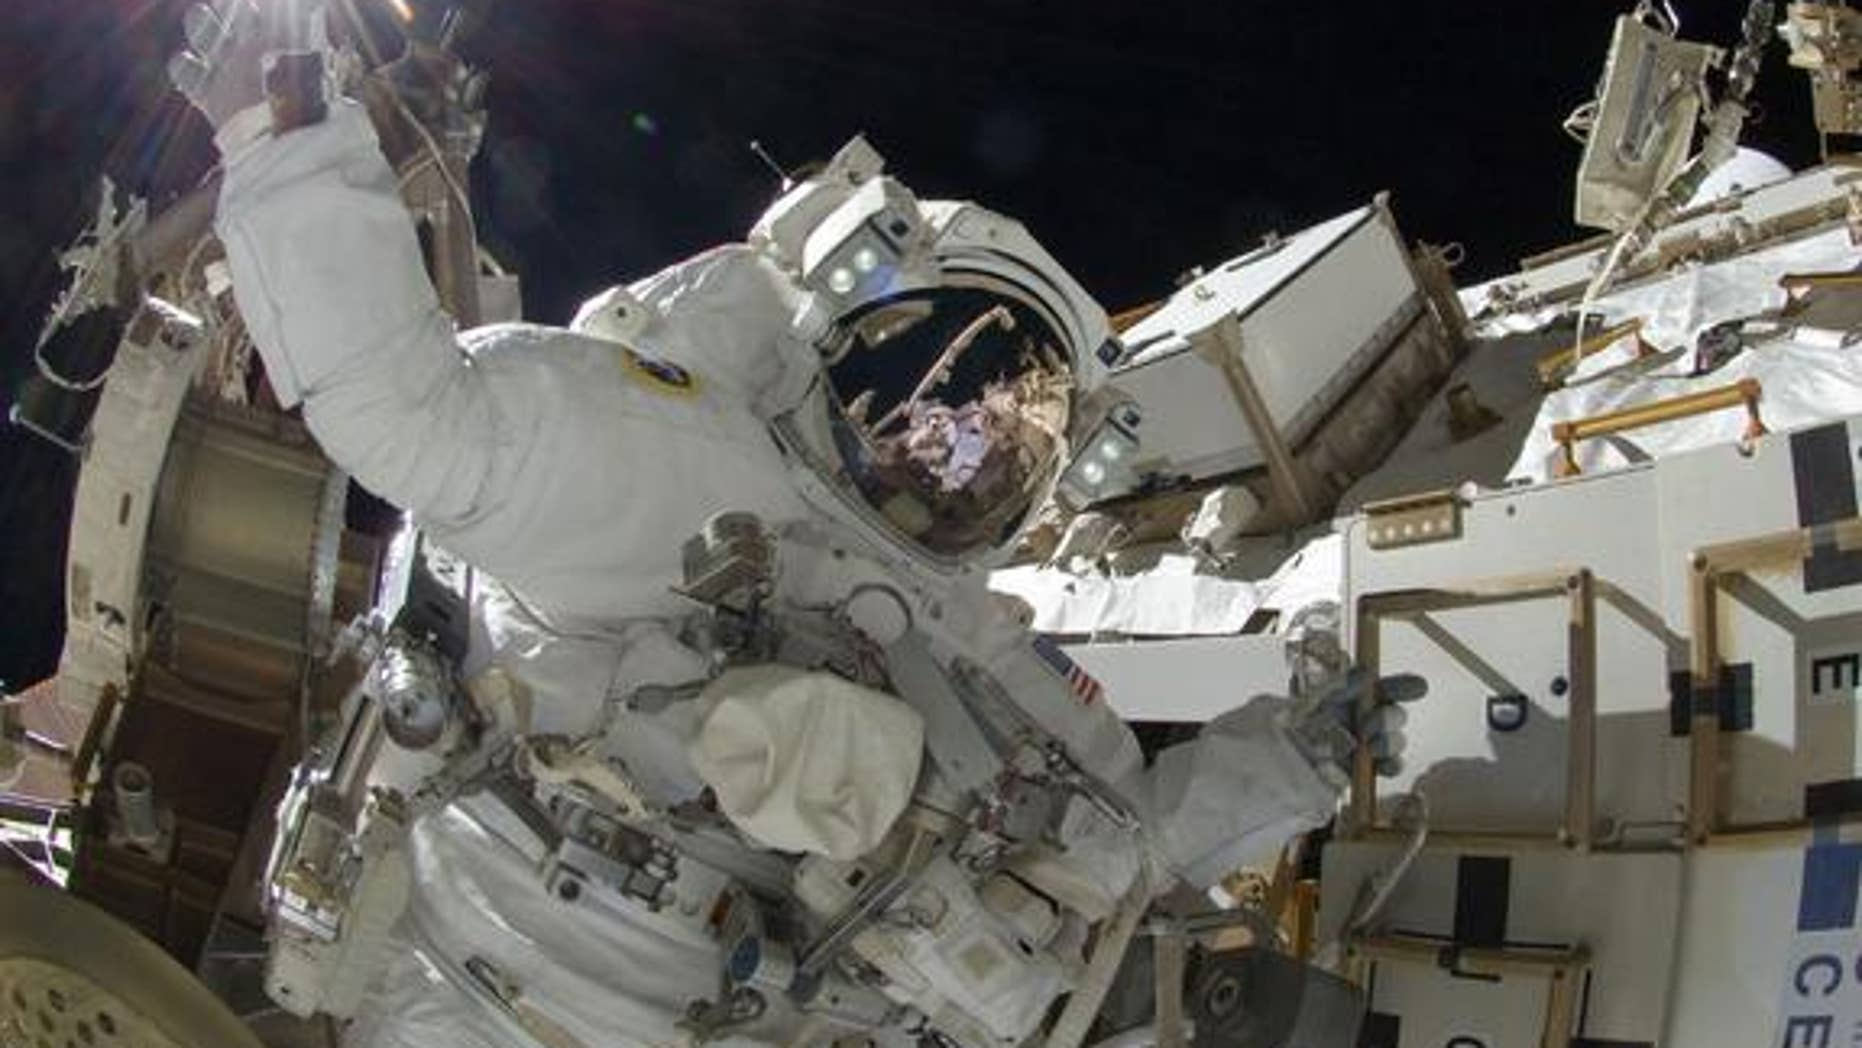 NASA astronaut Sunita Williams, Expedition 32 flight engineer, appears to touch the bright sun during the mission's third spacewalk on Sept. 5, 2012.